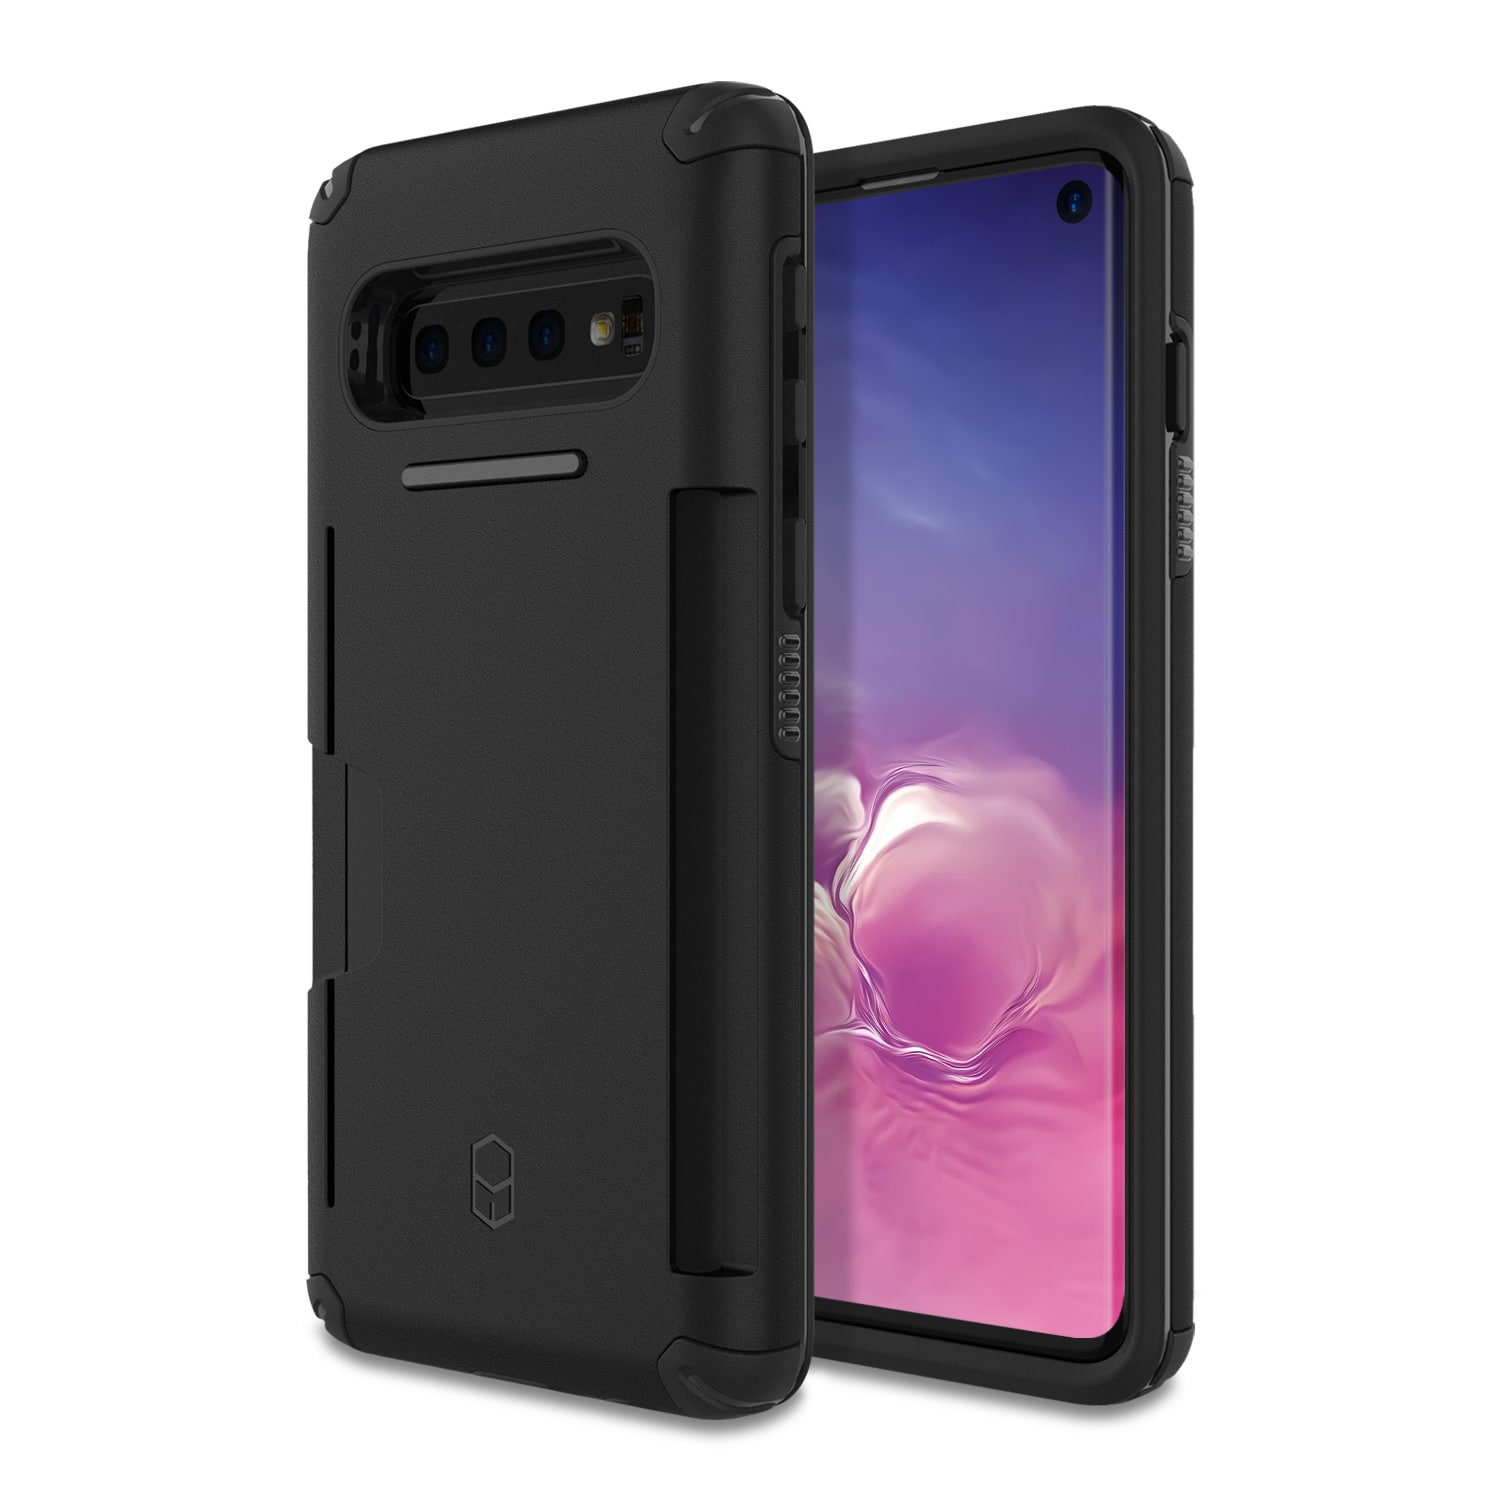 Patchworks Wallet Cases for Galaxy S10, S10 Plus, Note 9 from $5.94 + Free Shipping